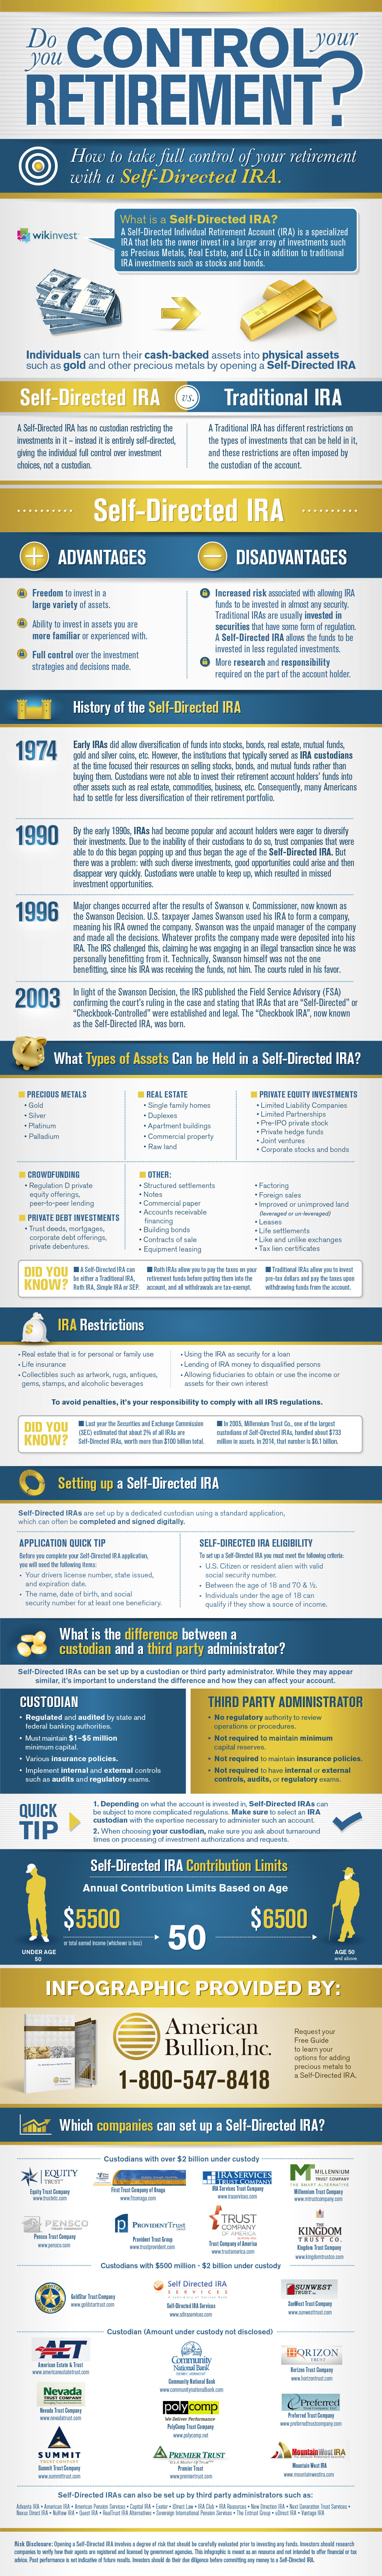 Self-Directed IRA Infographic